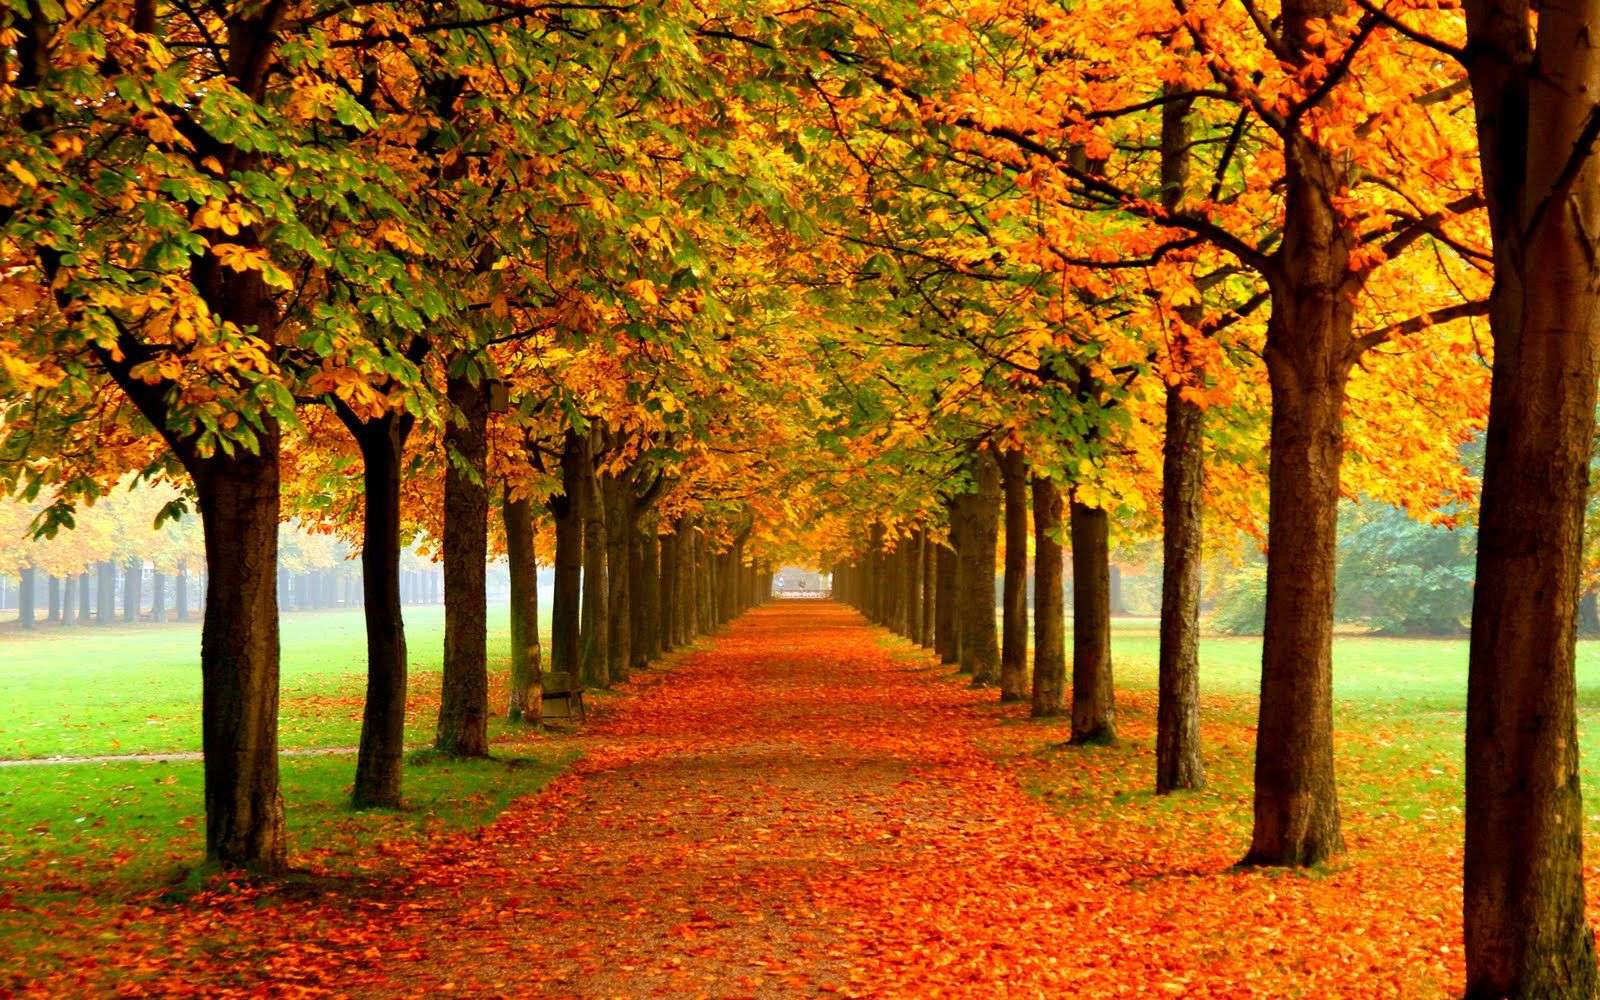 Autumn Leaf Hd Desktop Wallpaper Colorful Fall Photos Autumn Trees Fall Pictures